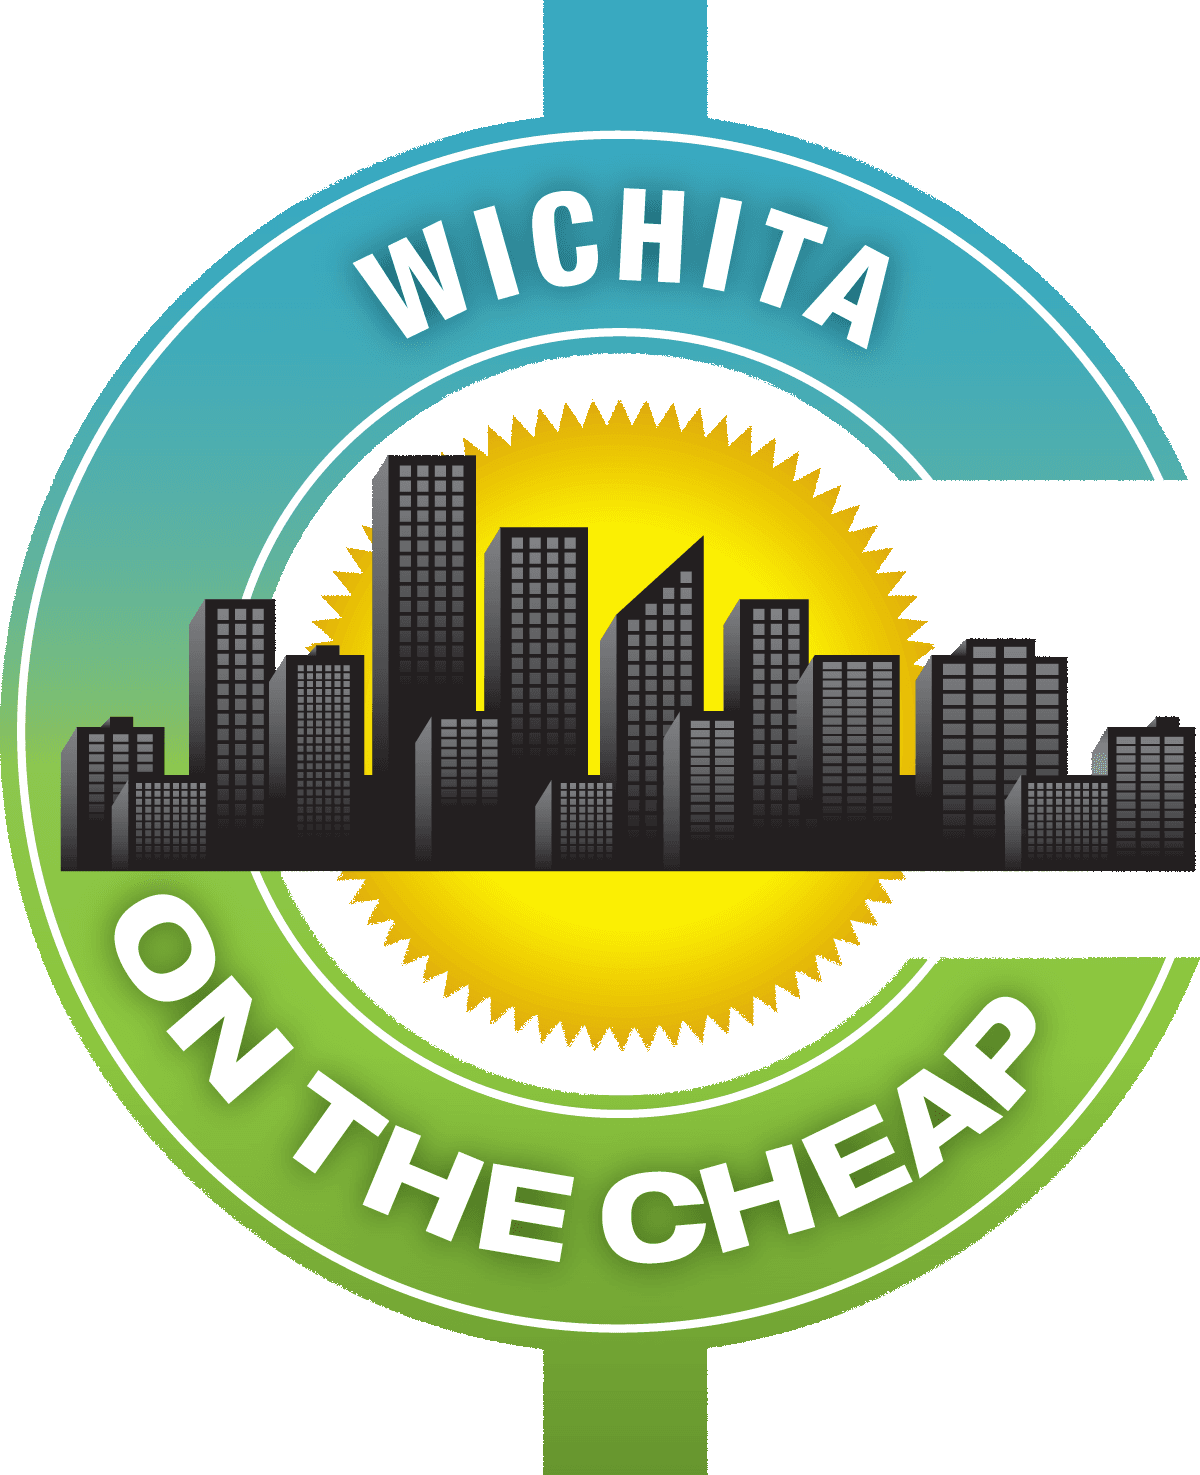 Wichita OTC Opens in new window